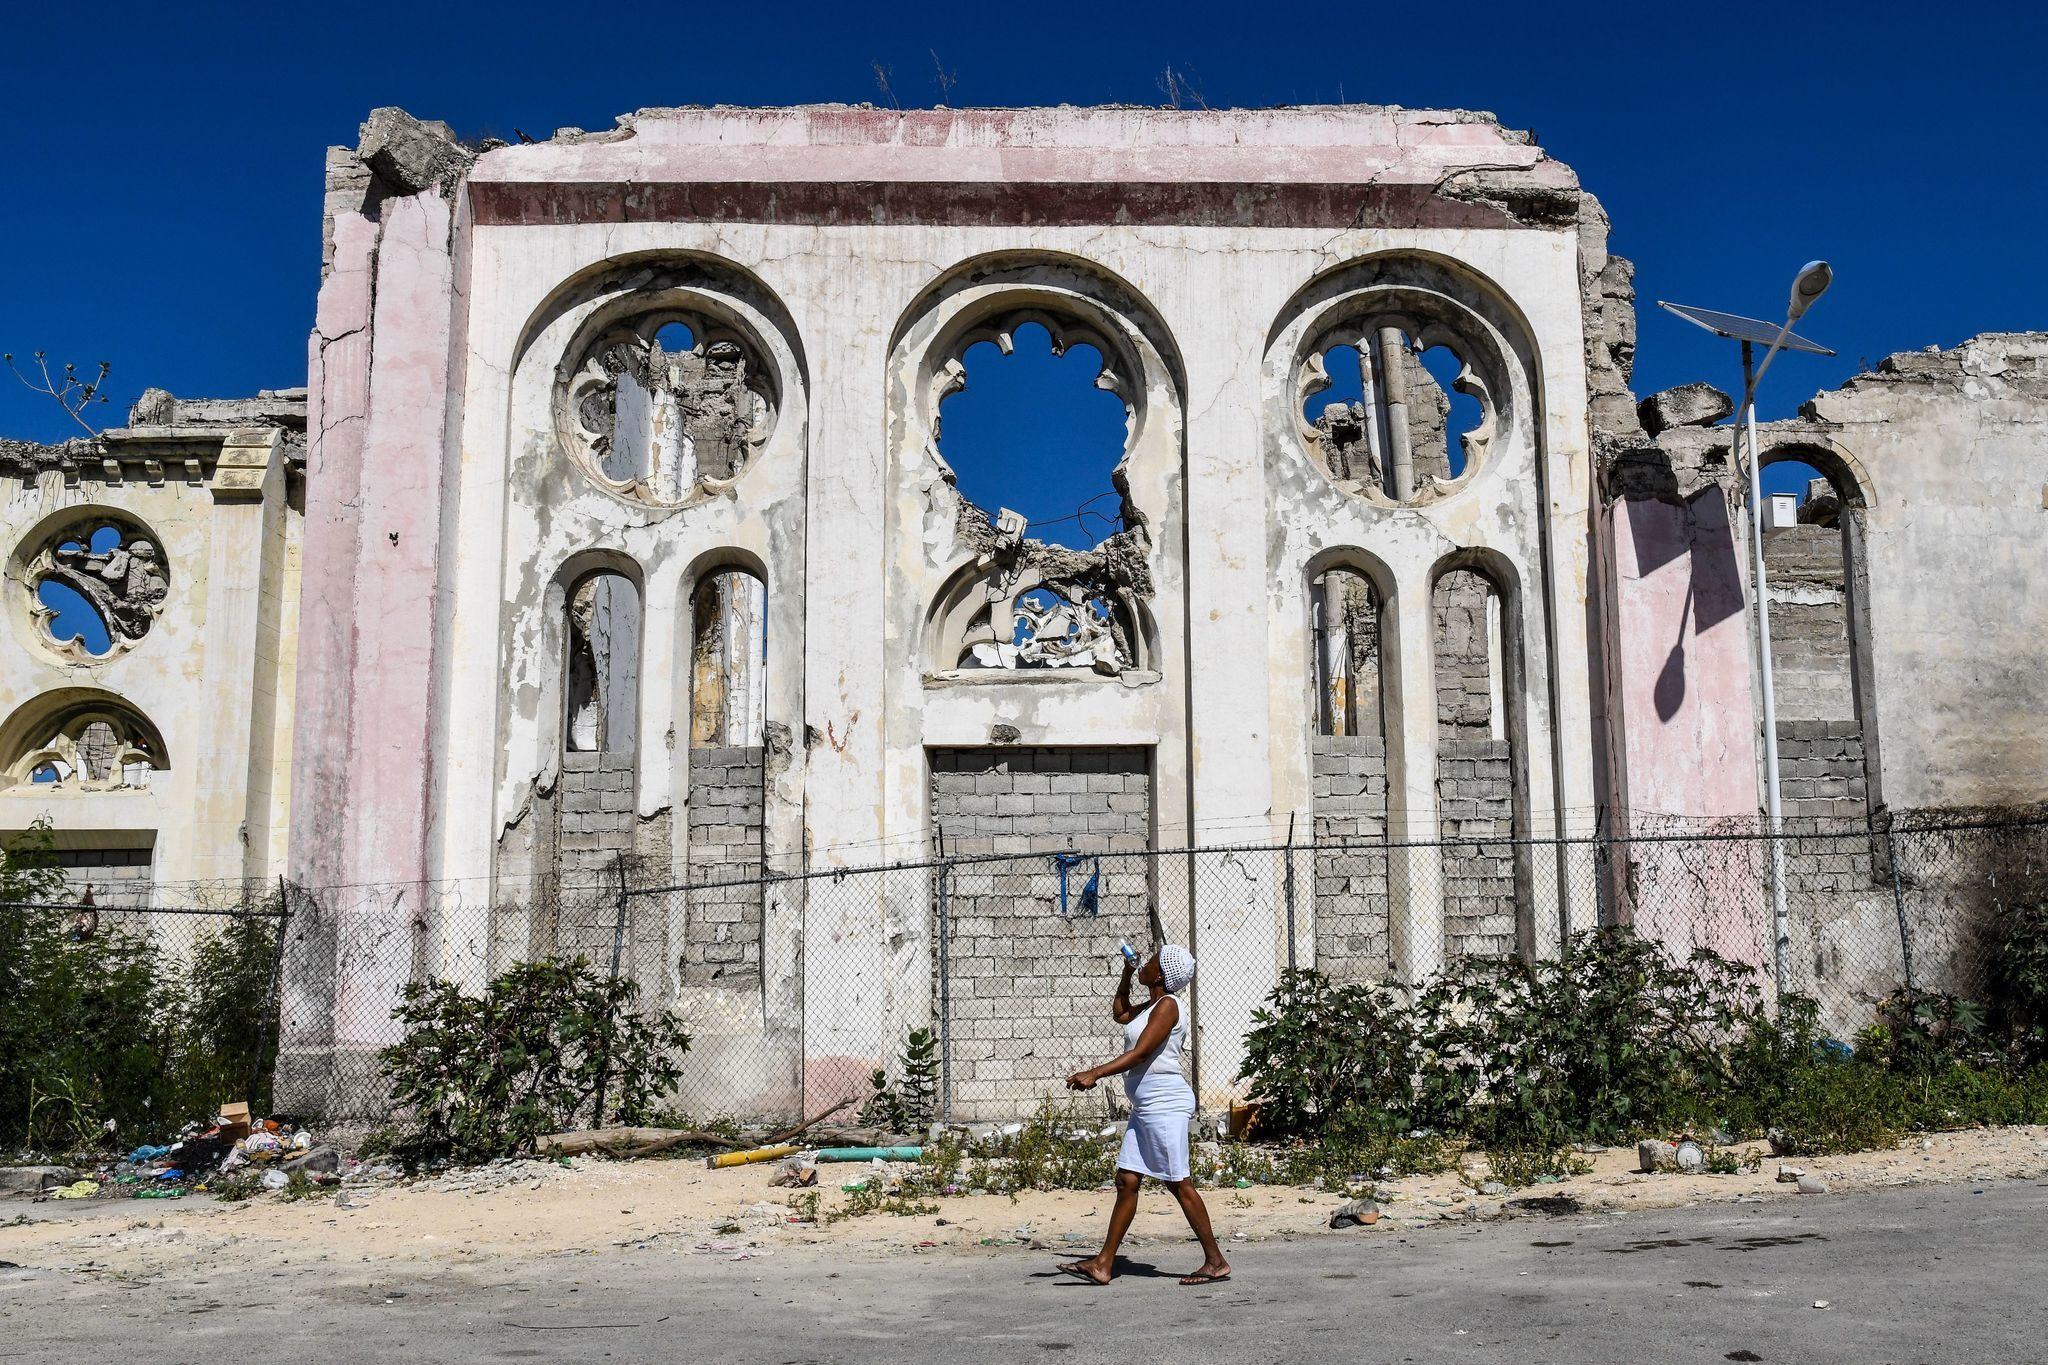 CARIBBEAT: 'Then and Now' event looks at economic and social after-shocks of the deadly 2010 Haiti earthquake and the 'resilience' of the nation's people.